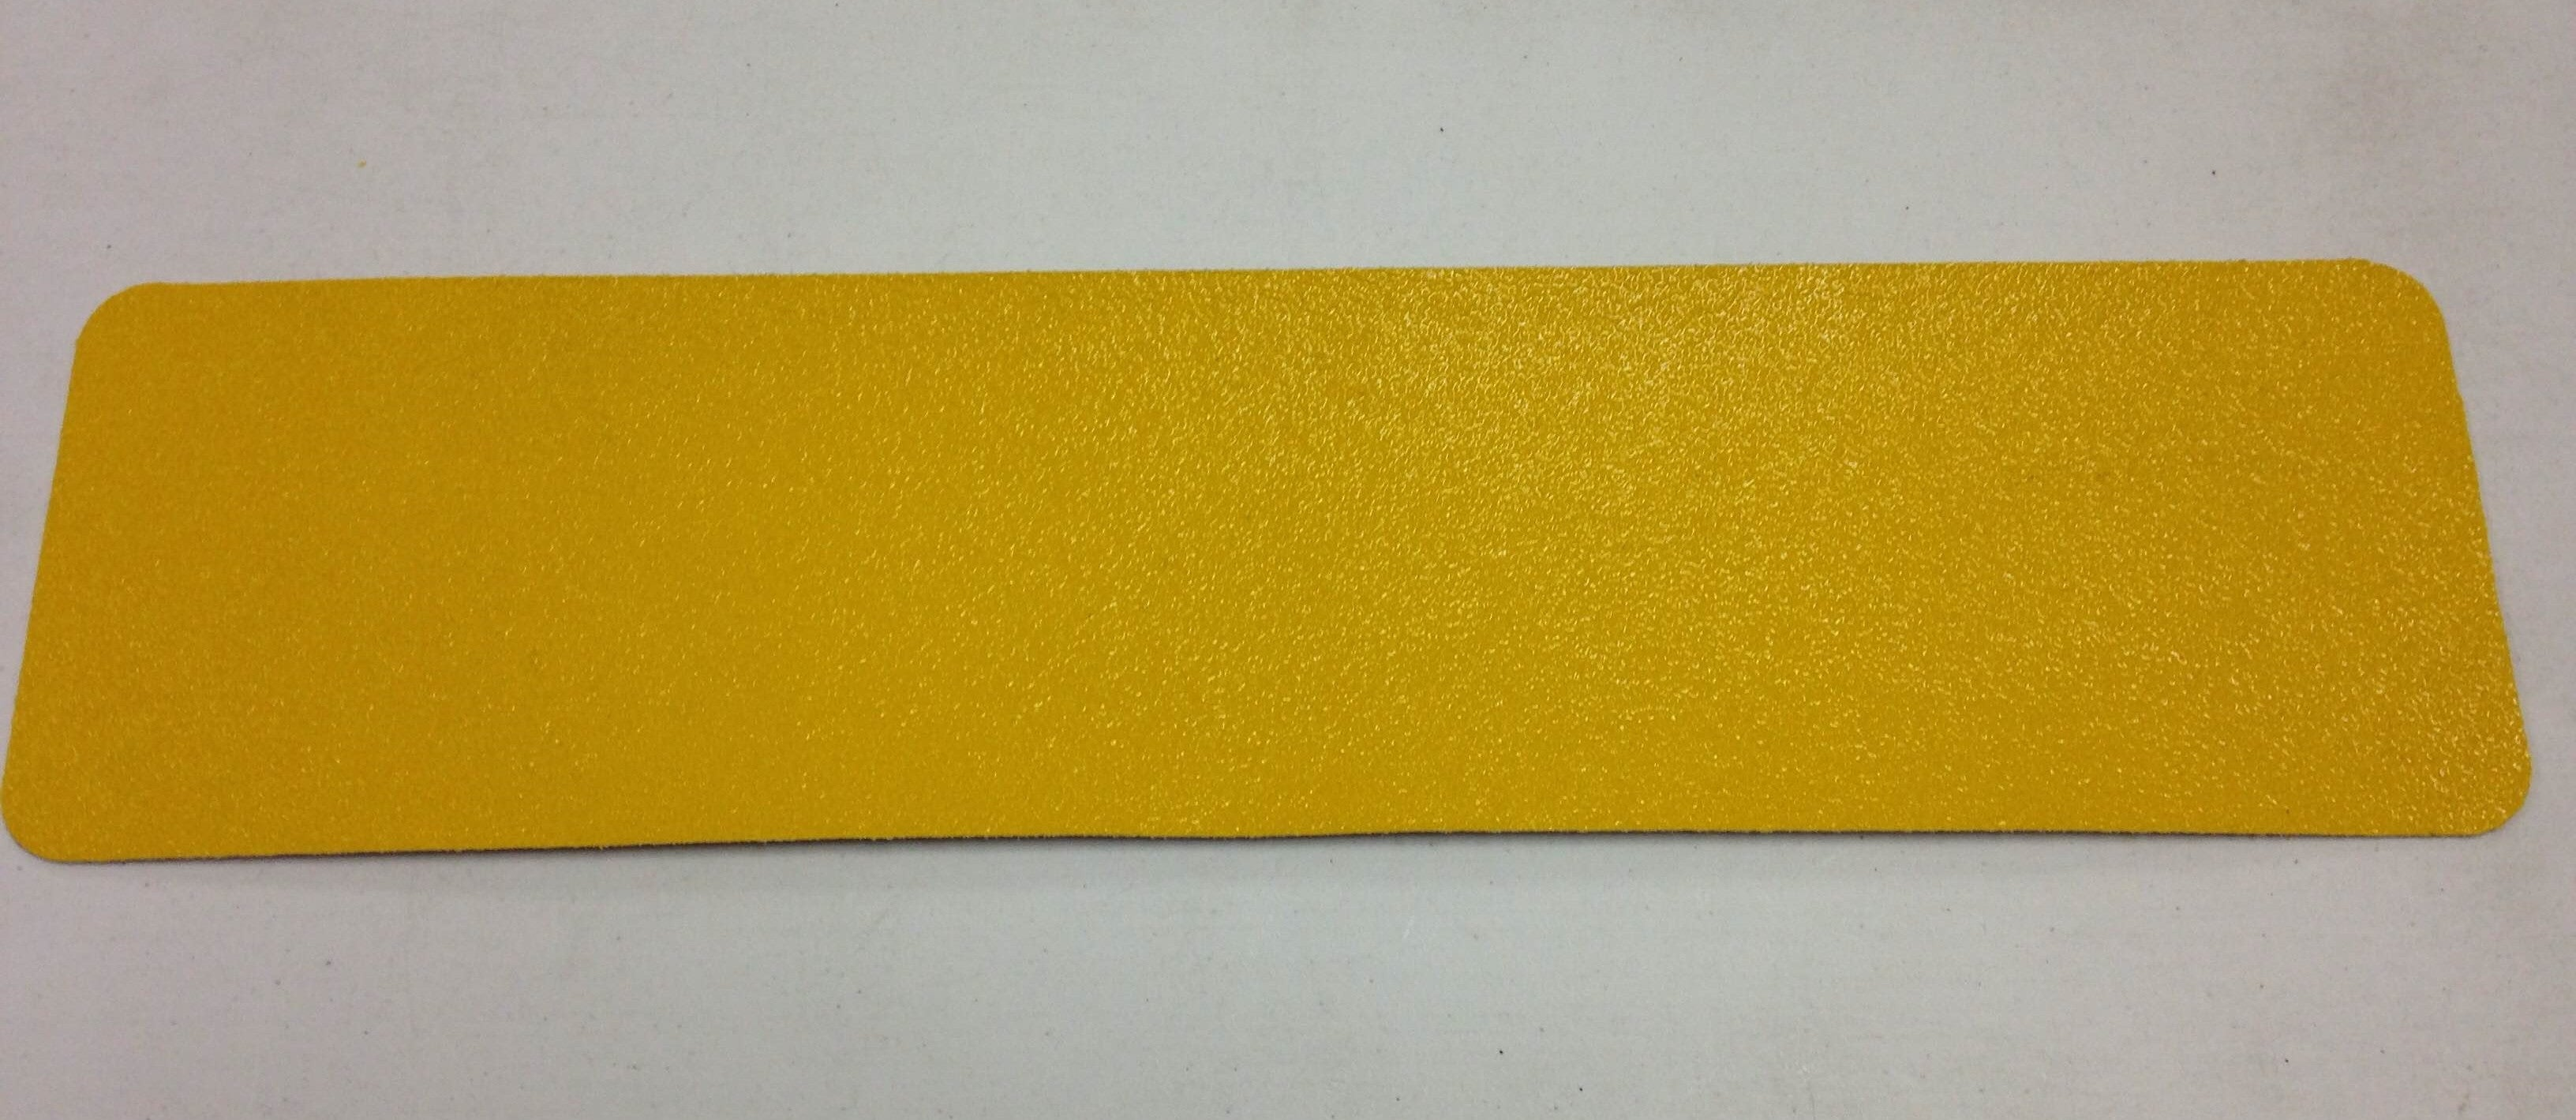 "3"" X 24"" Tread Extreme Adhesive Heavy Duty Coarse Grit Abrasive Anti Slip Tape Treads Yellow 84508EC Case of 12"